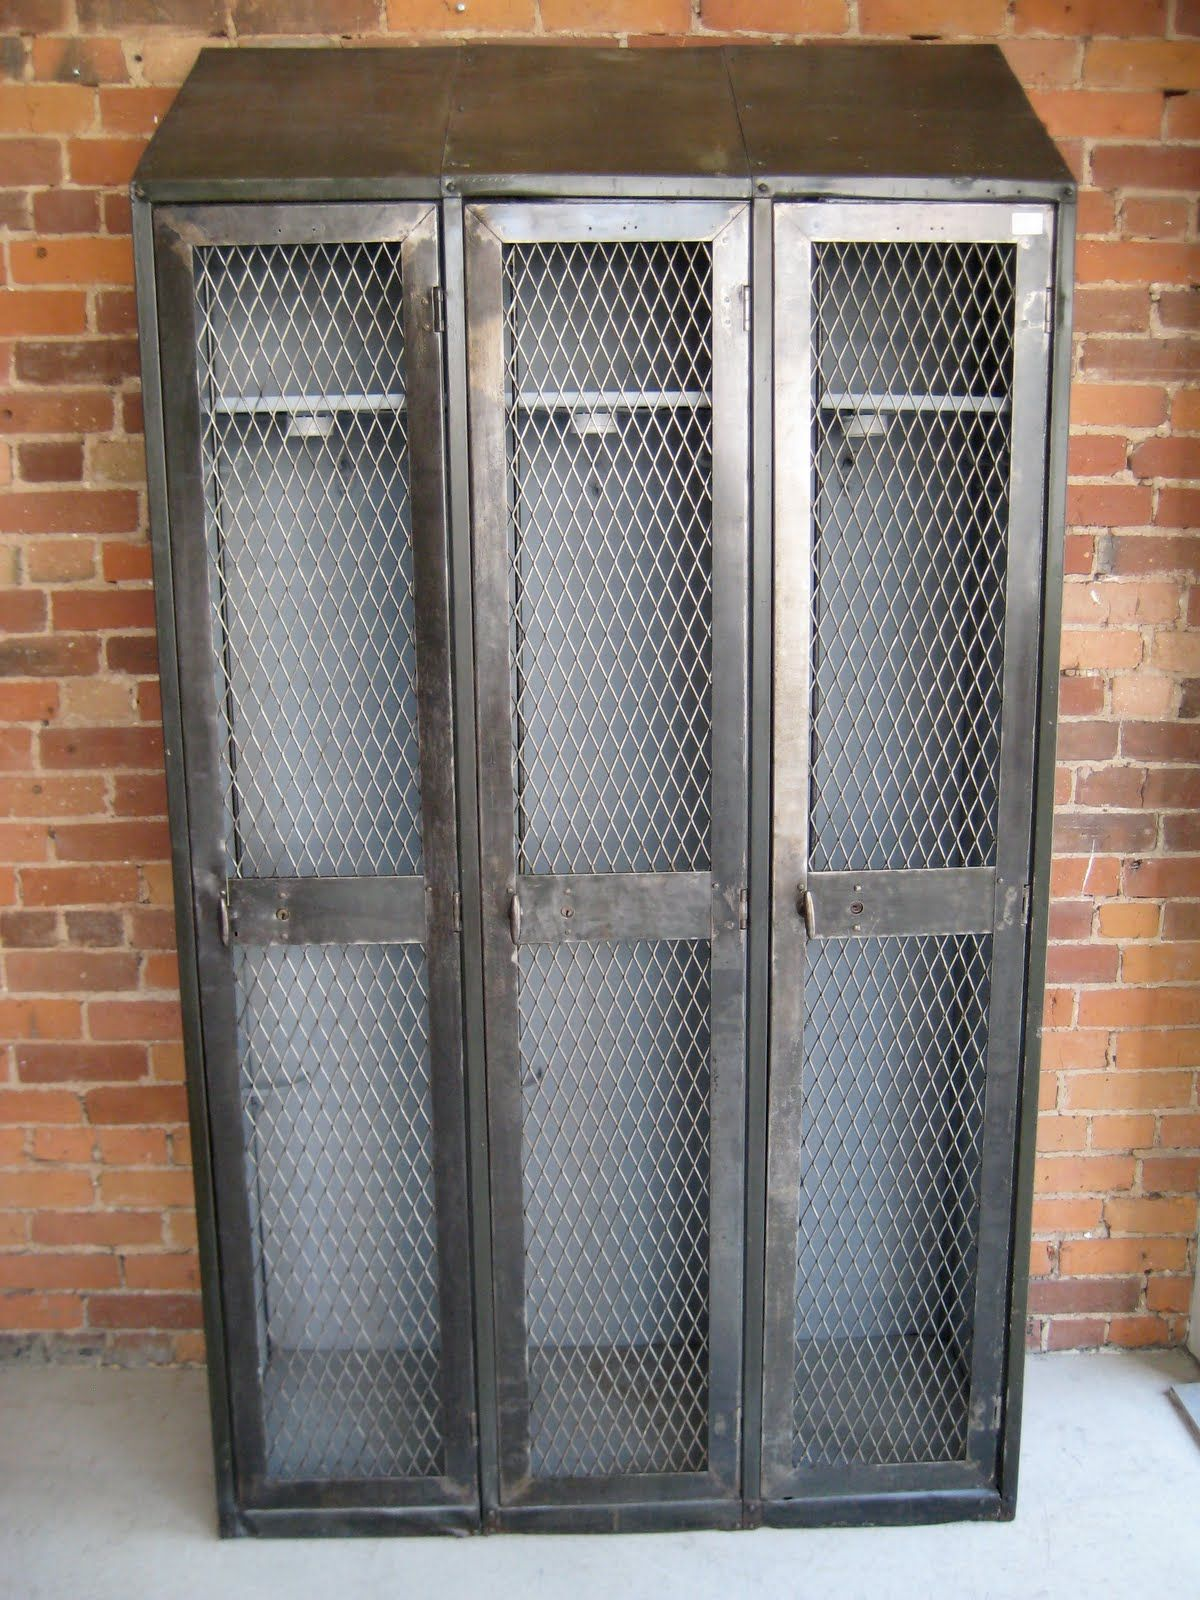 Locker Vintage Vintage Metal Lockers Would Be Awesome For A Coat Closet